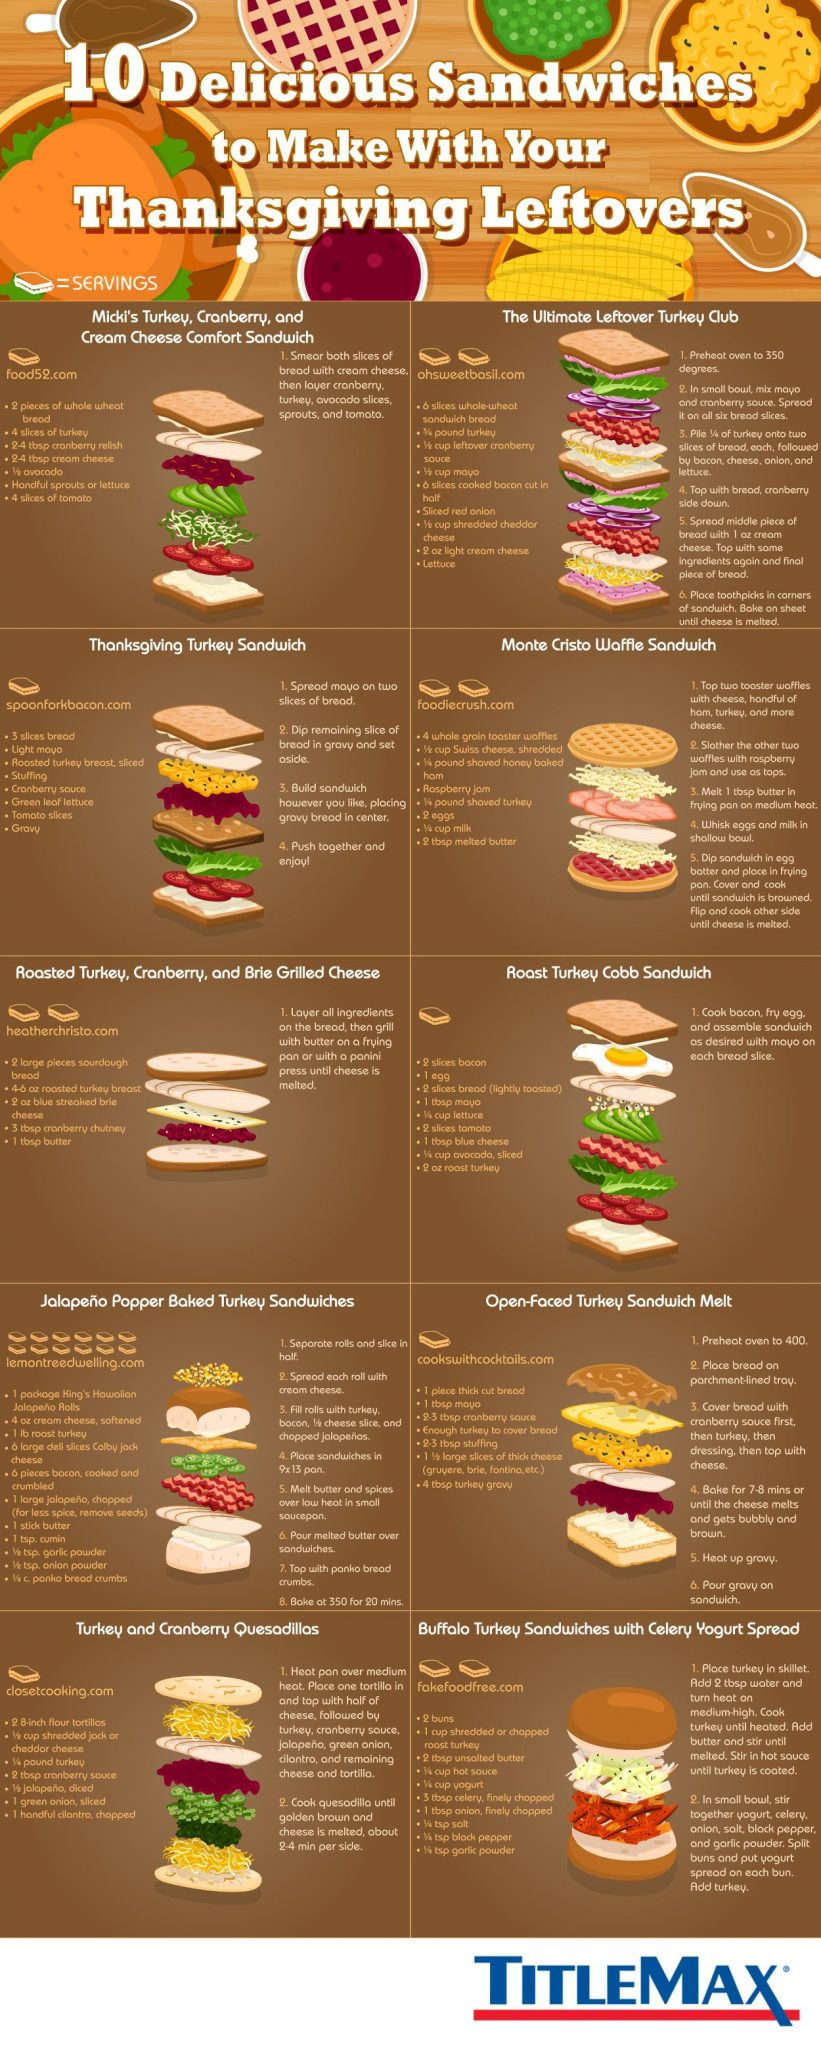 10 Delicious Sandwiches to Make With Your Thanksgiving Leftovers #infographic